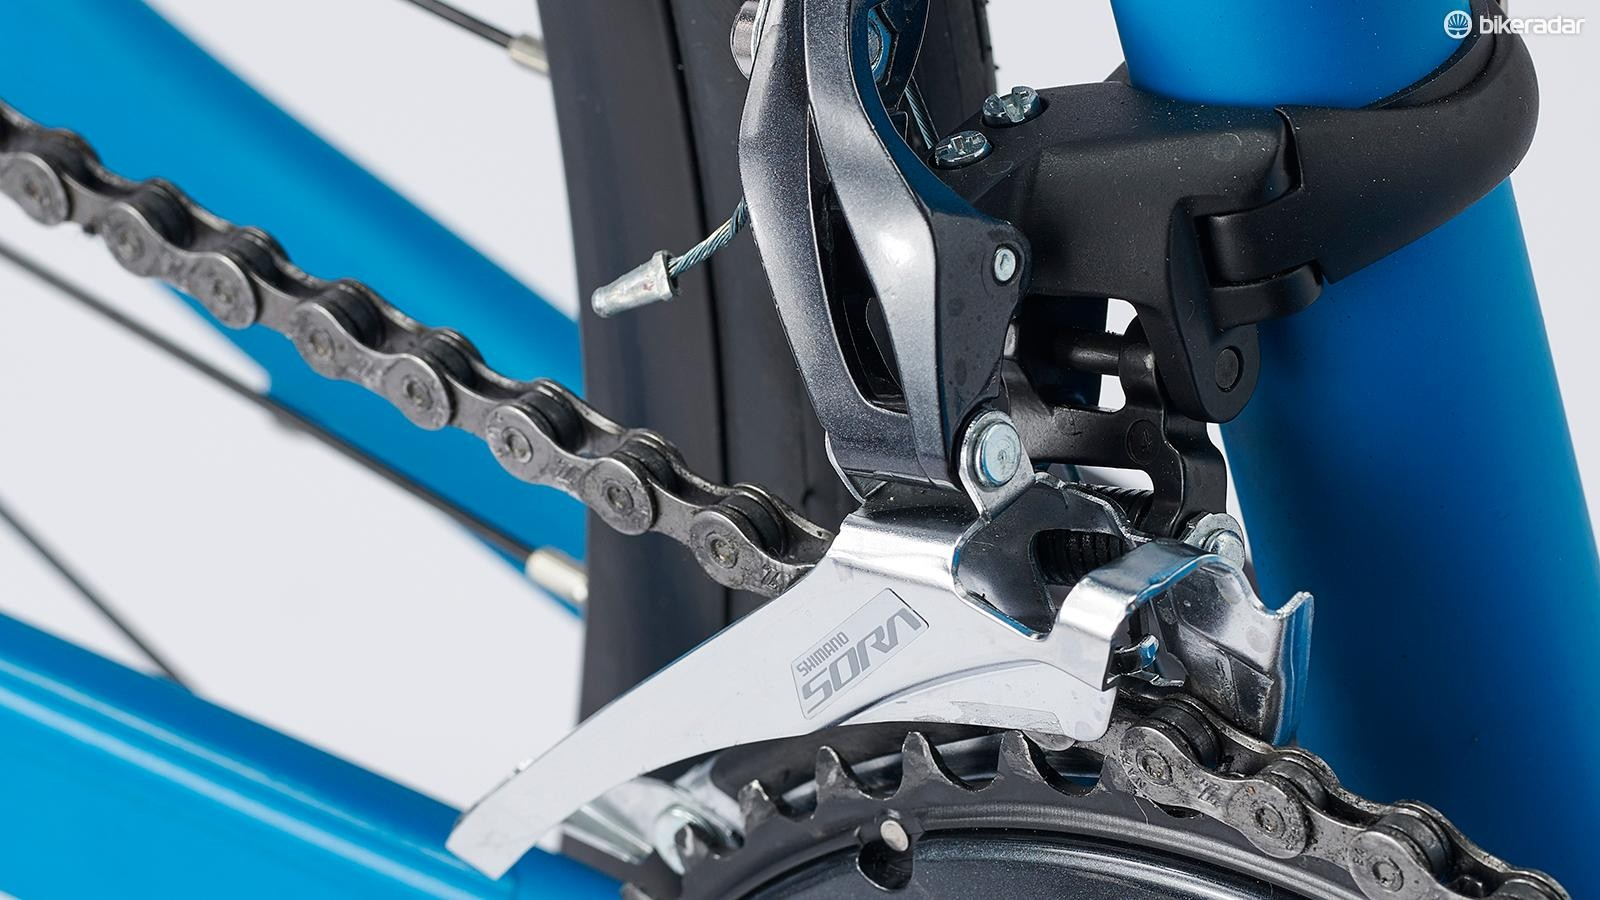 The drivetrain is mostly Shimano's Sora 9-speed